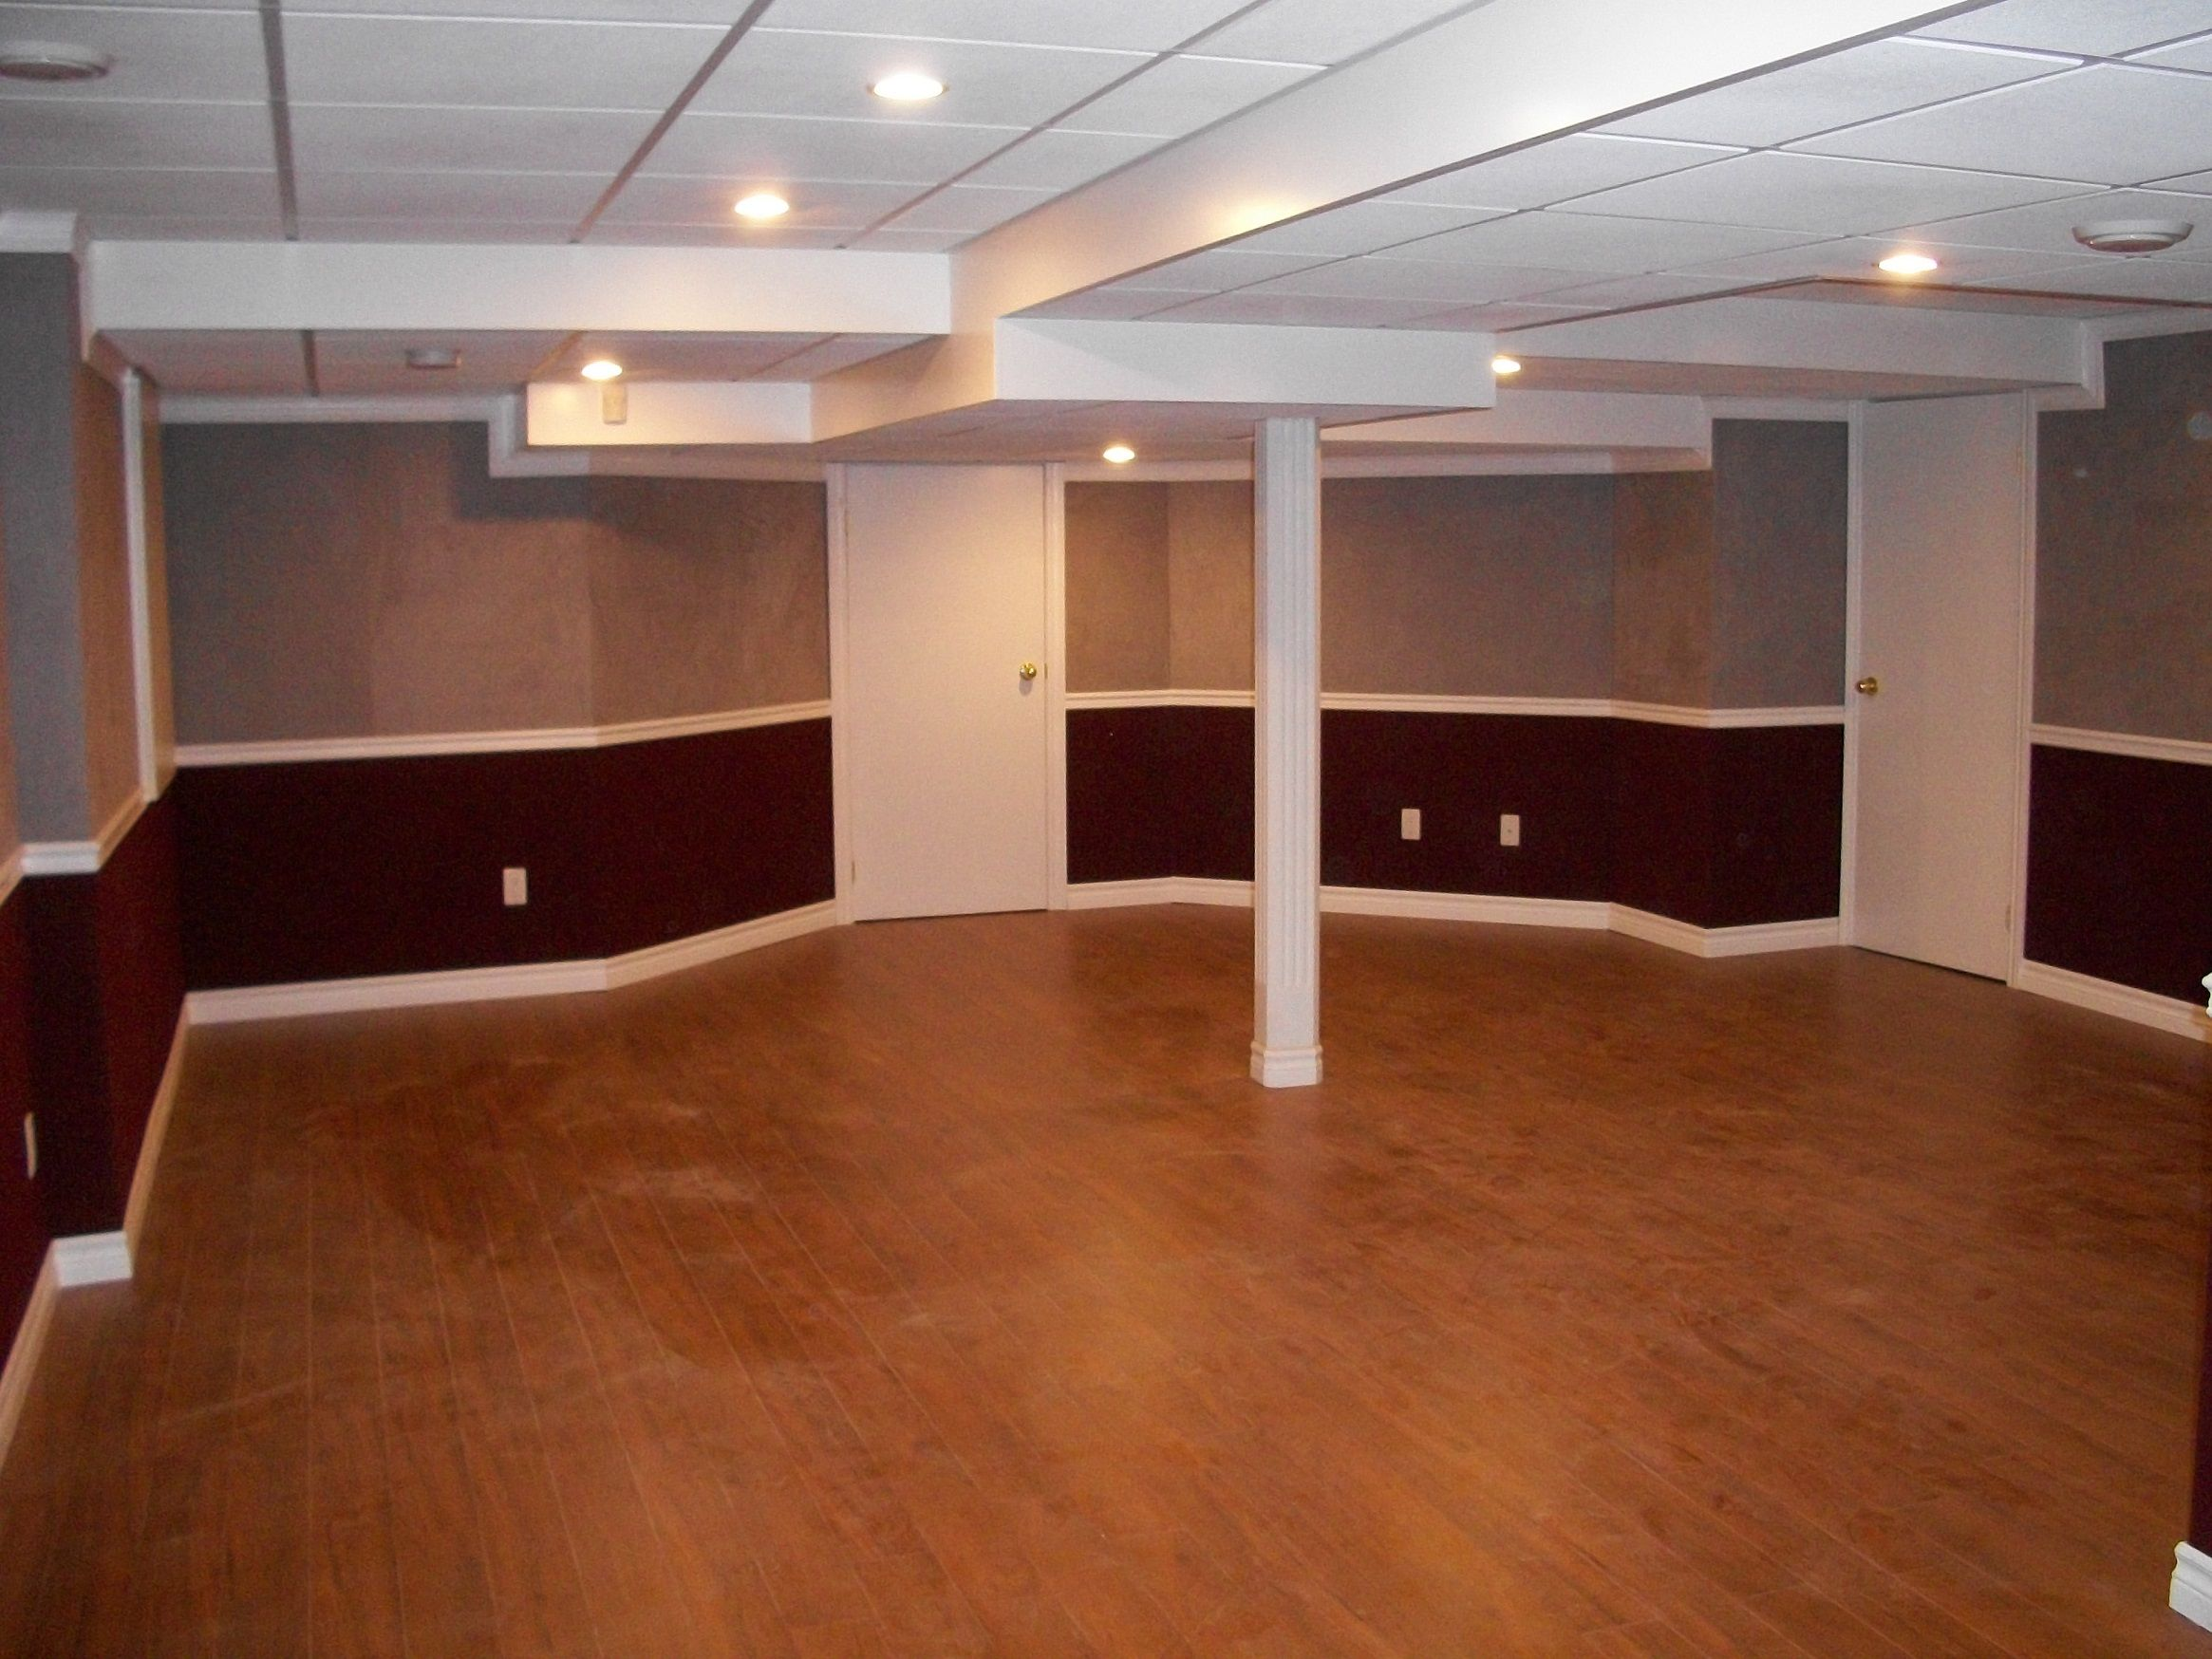 Basement: Diy Waterproof Basement Wall Panels And Removable Basement Wall  Panels With Insulated Basement Wall